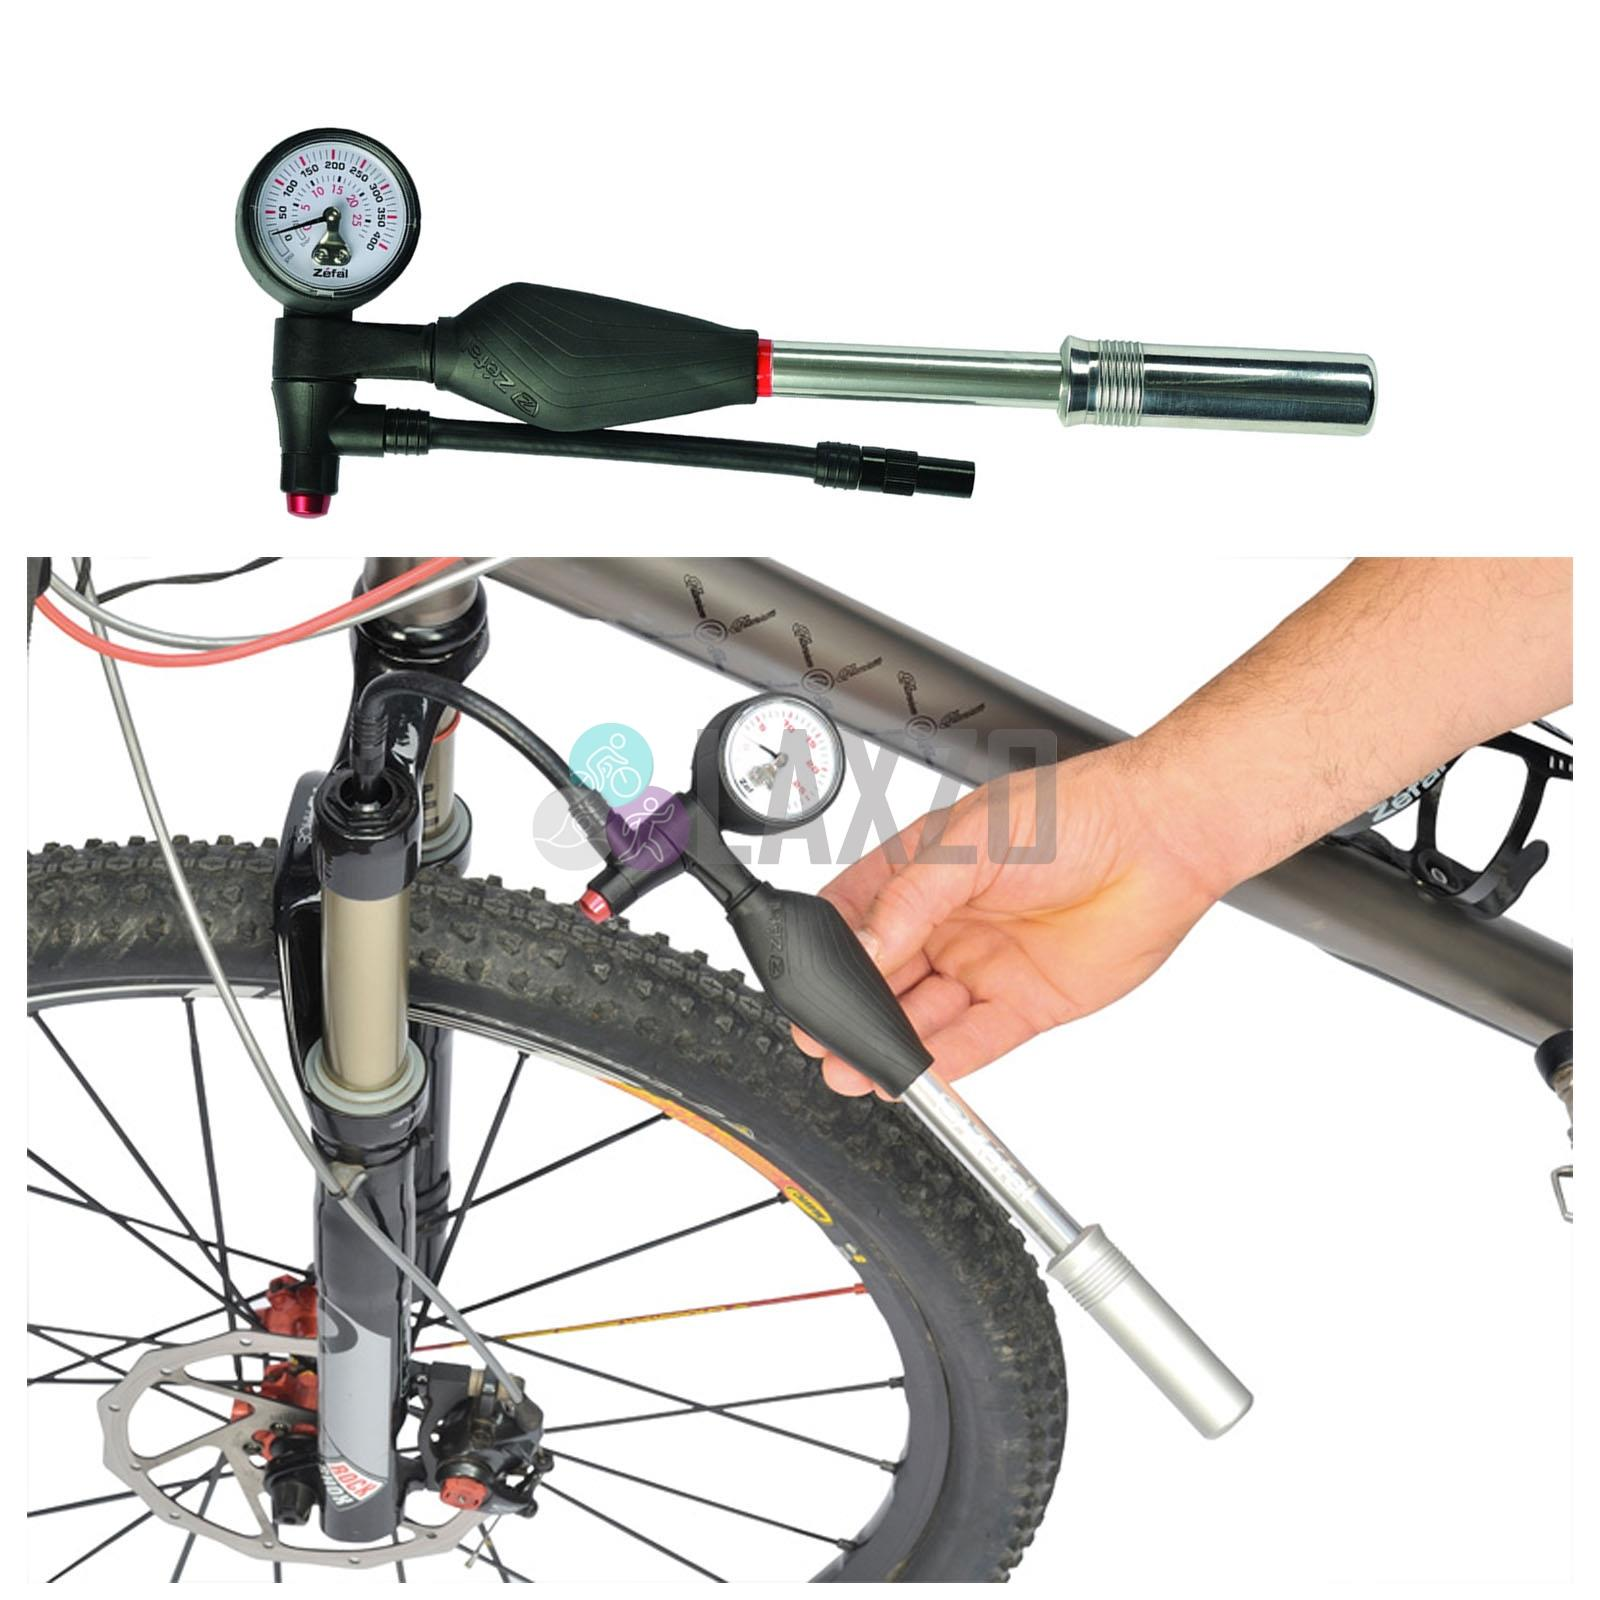 Zefal Z Shock Aluminium Mini Pump Small In Silver//Black 270mm Bicycle Bike